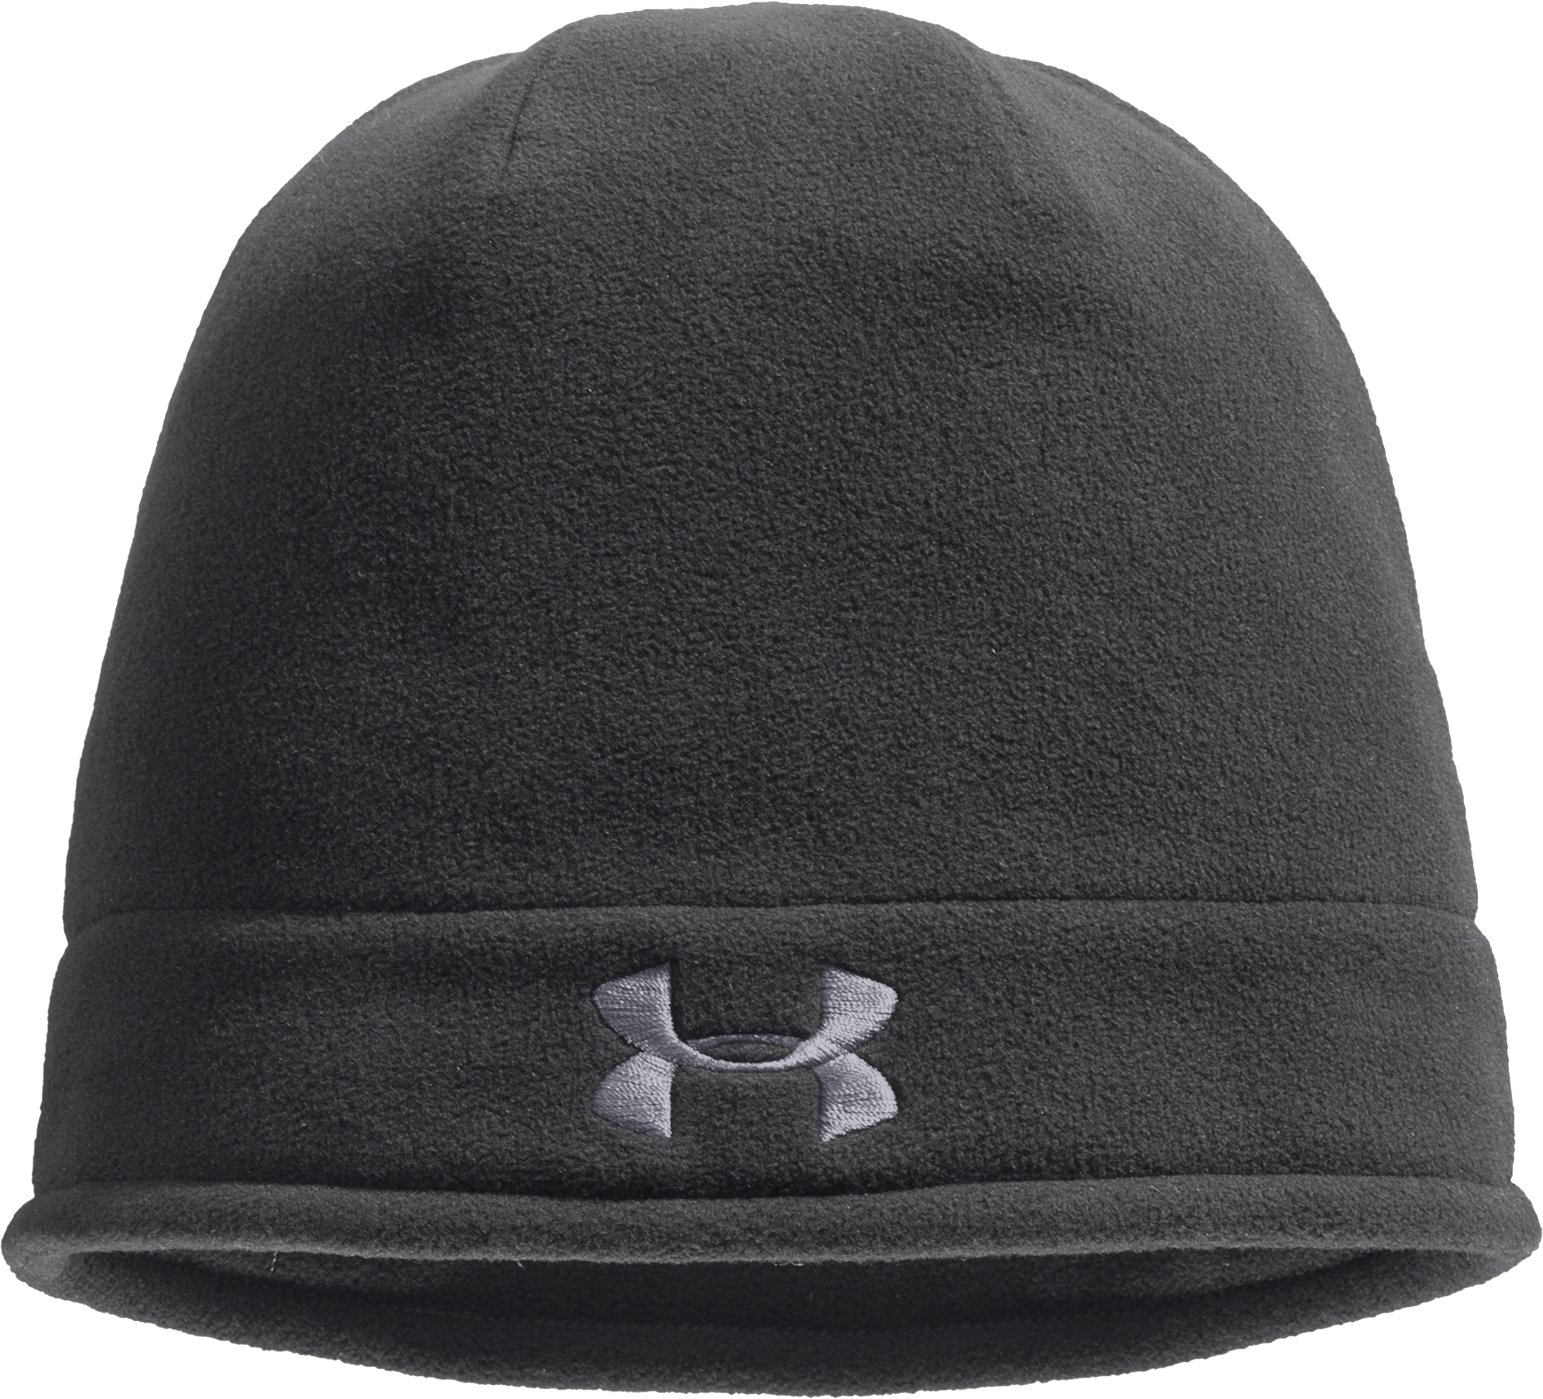 Men's ColdGear® Infrared Fleece Storm Beanie, Graphite